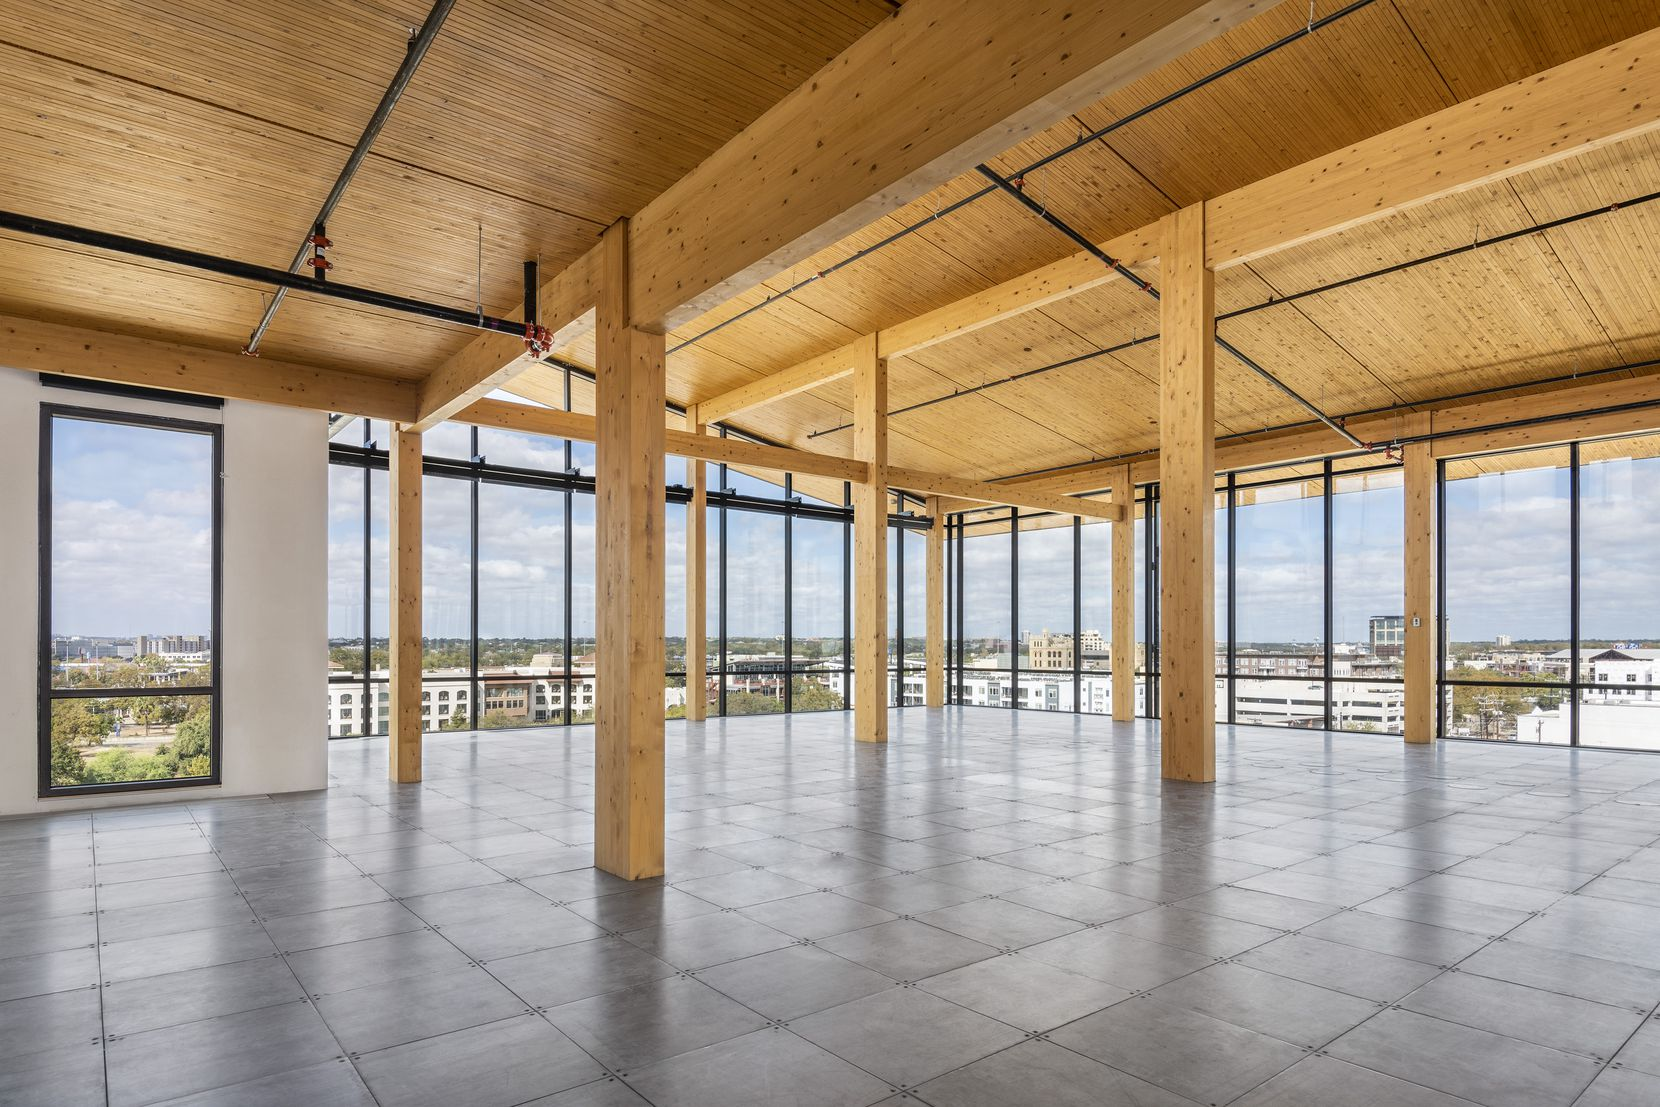 The interior of a new San Antonio office building designed by Dallas architect BOKA Powell.